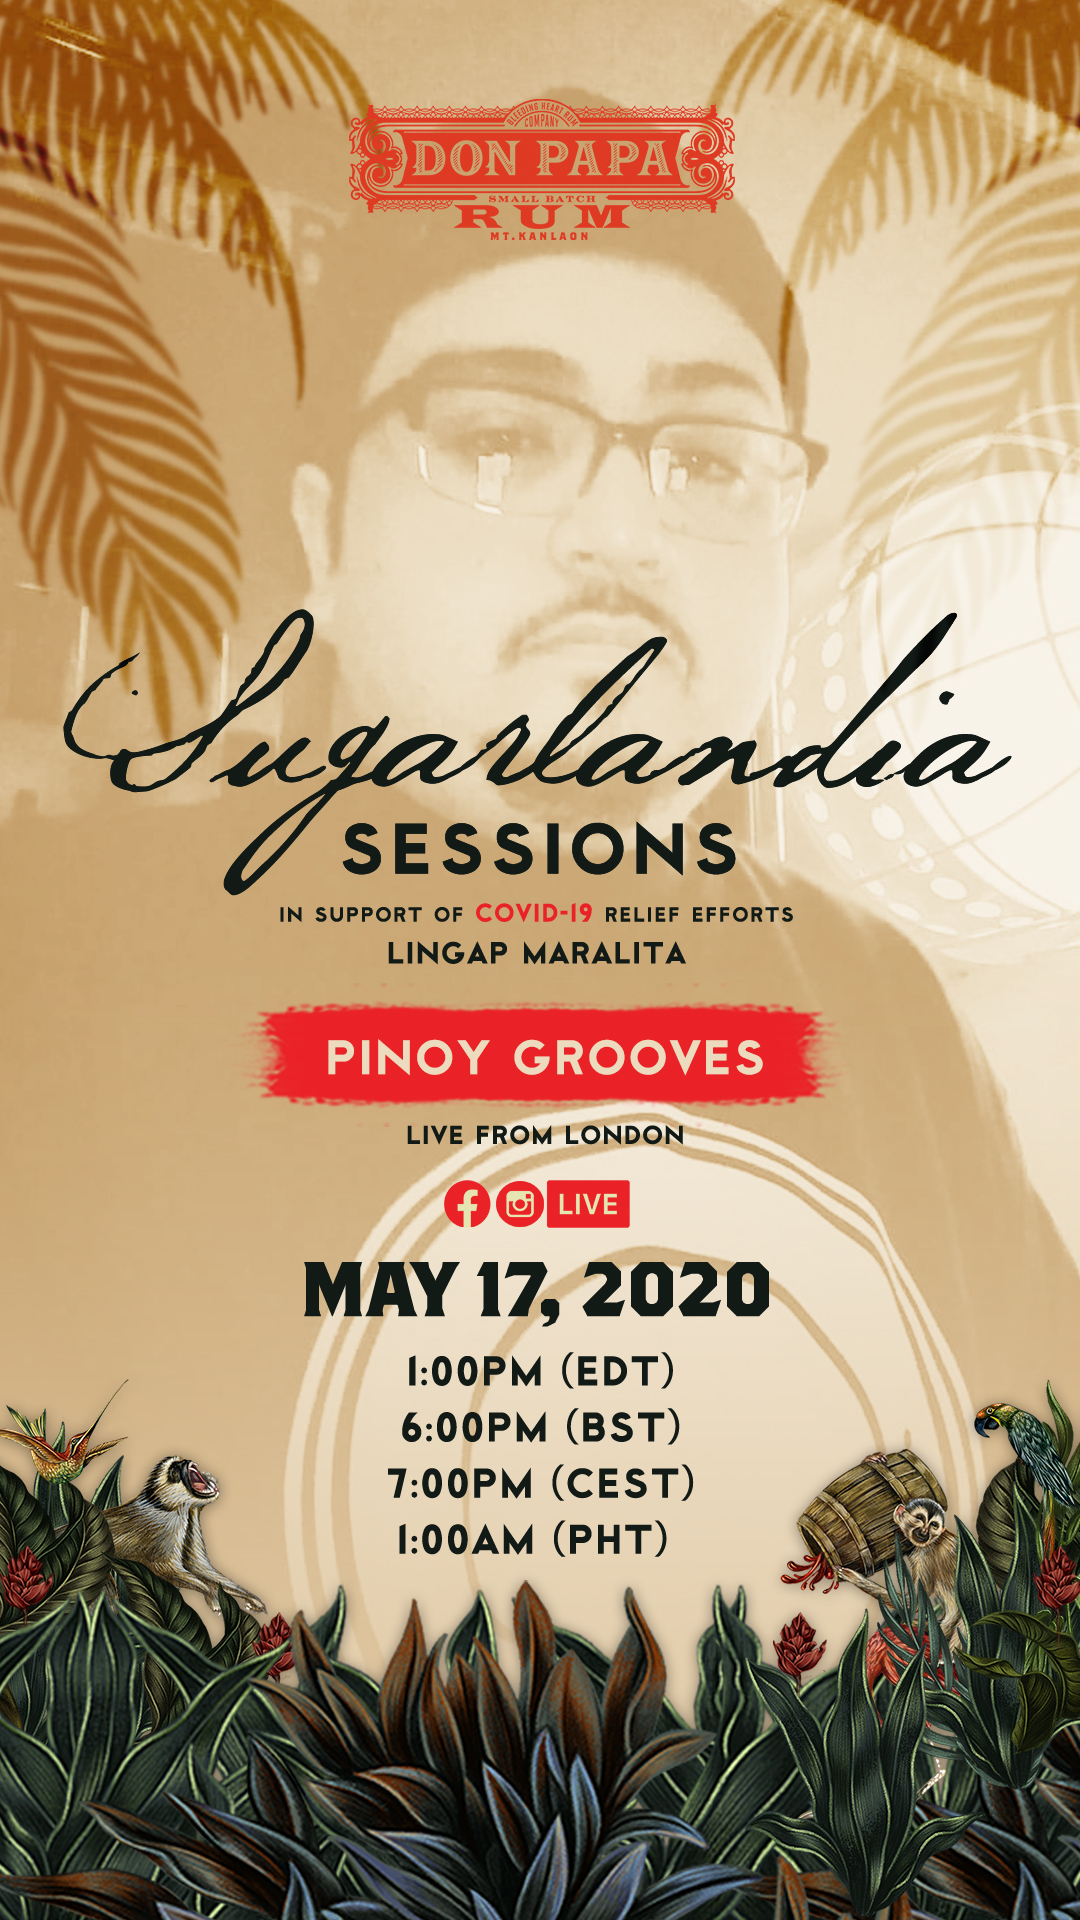 Events Pinoy Grooves